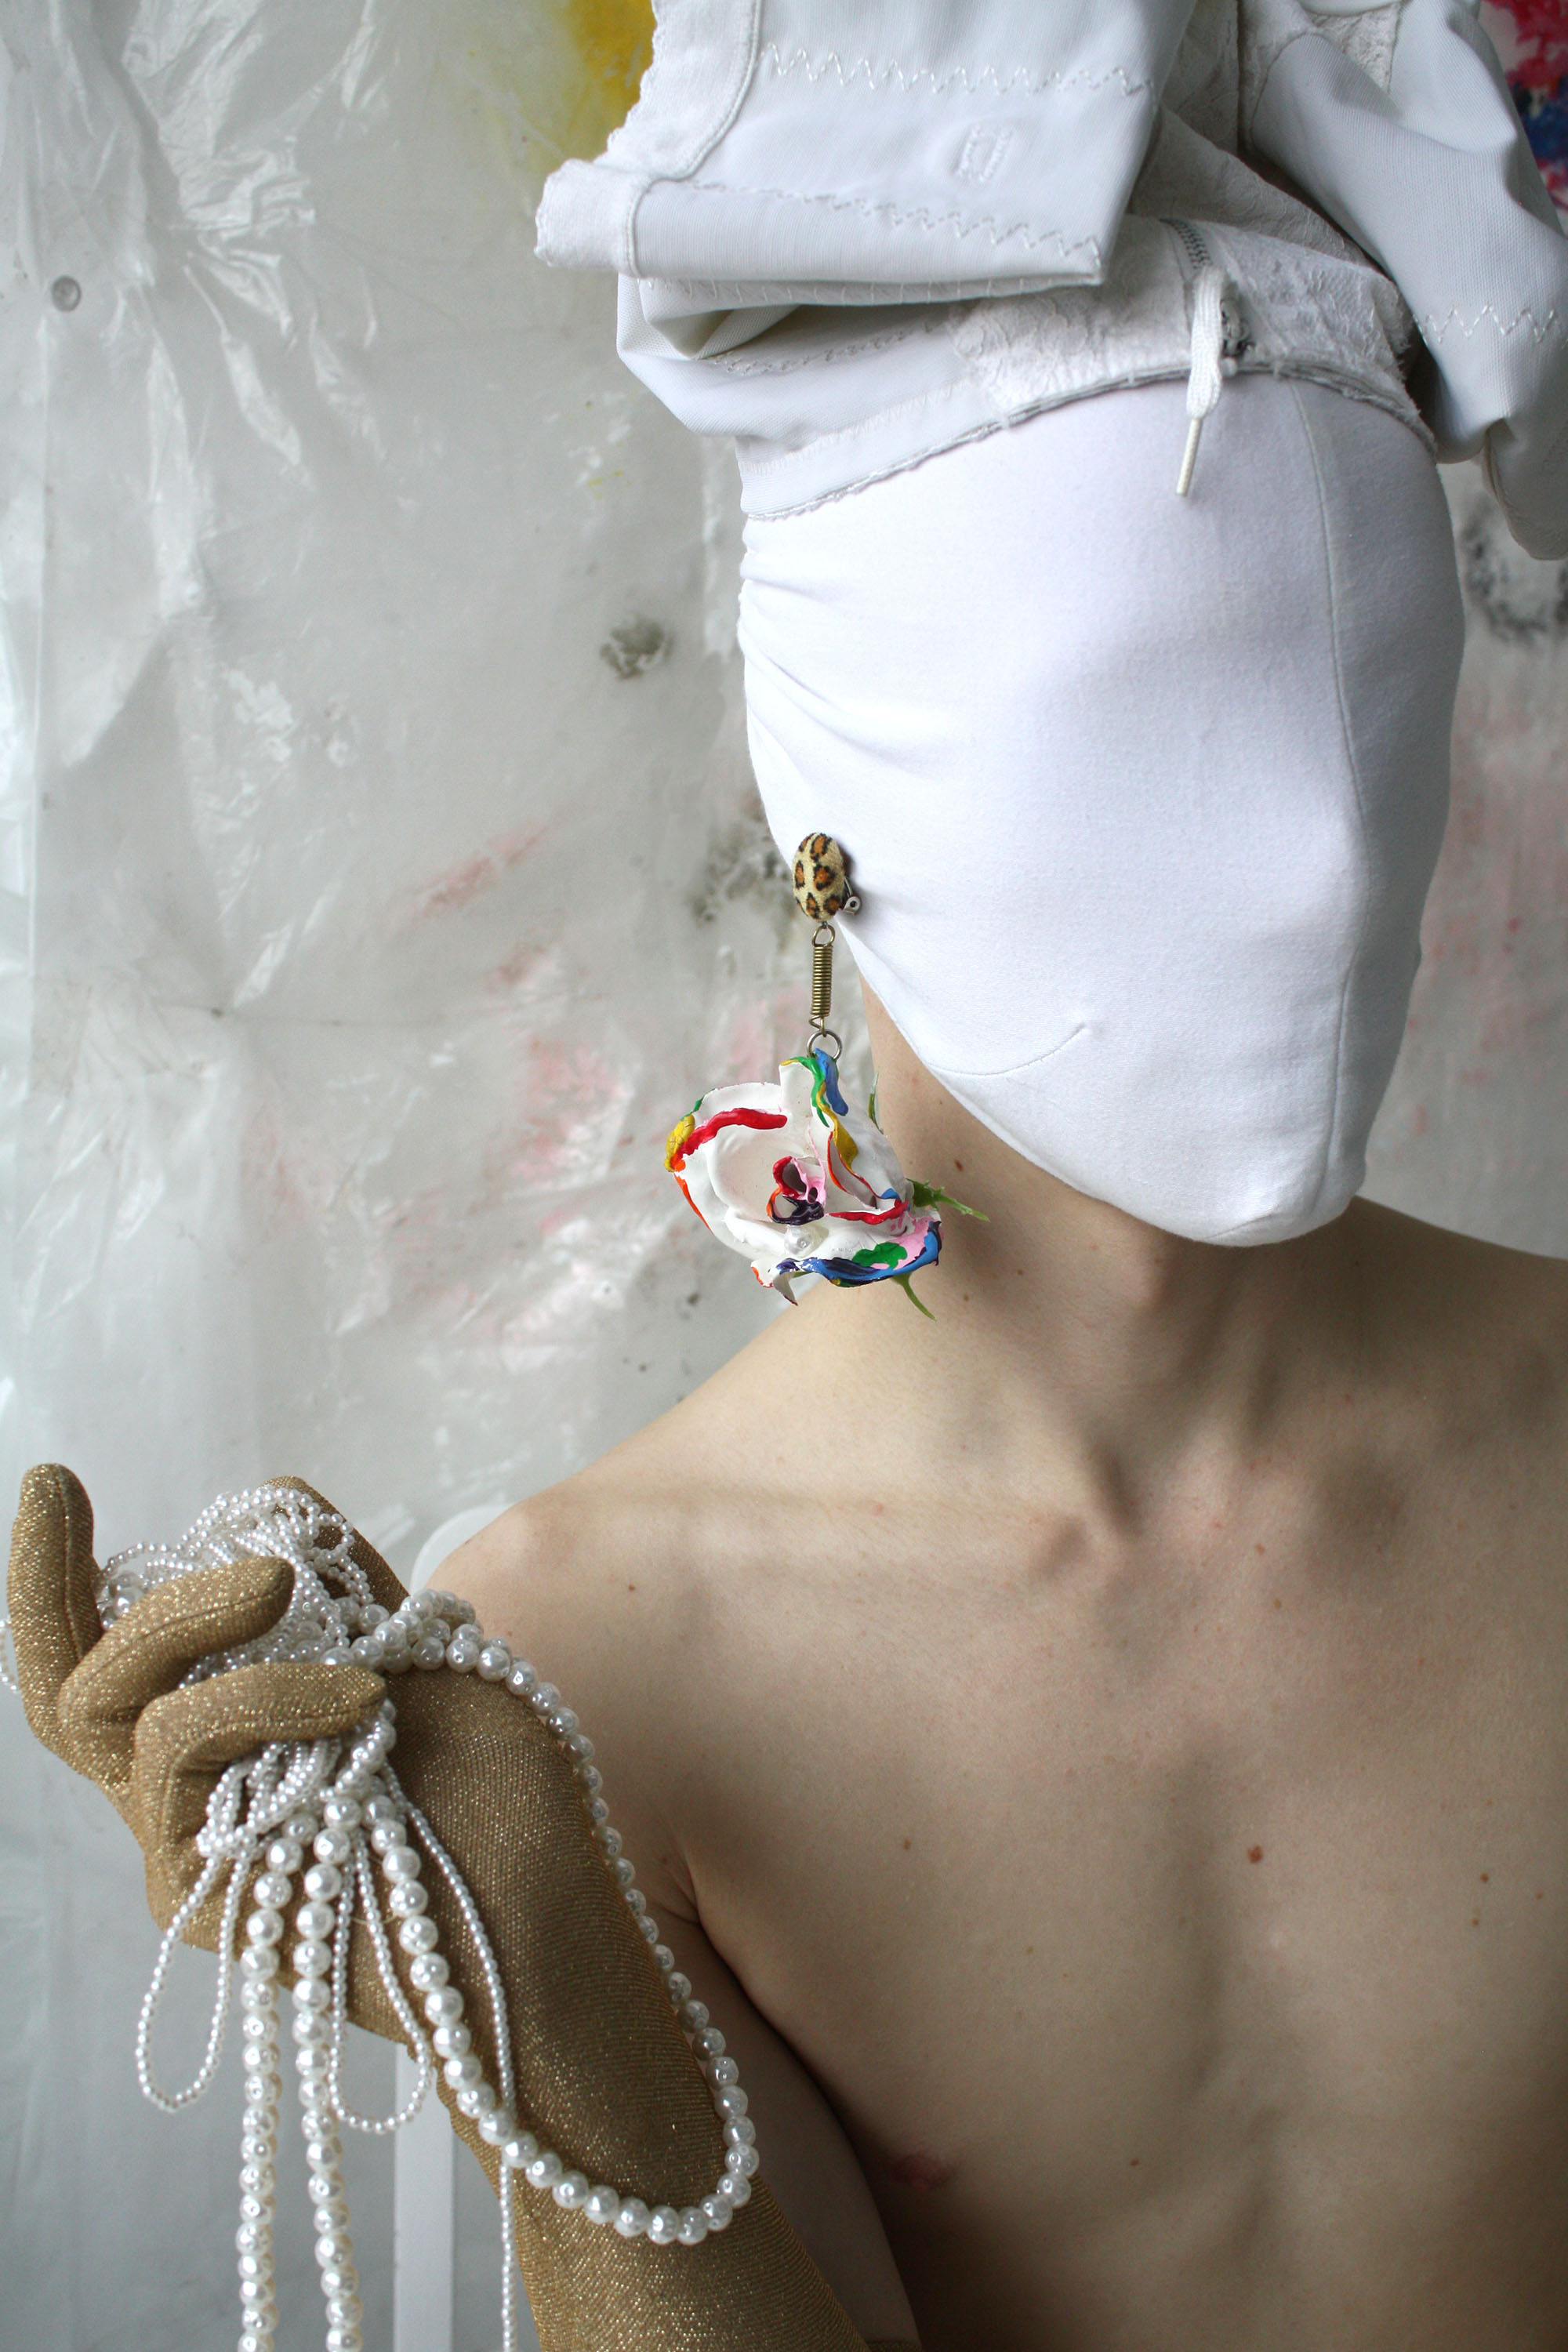 Masked model wearing assemblage earring of painted rose and mixed materials.